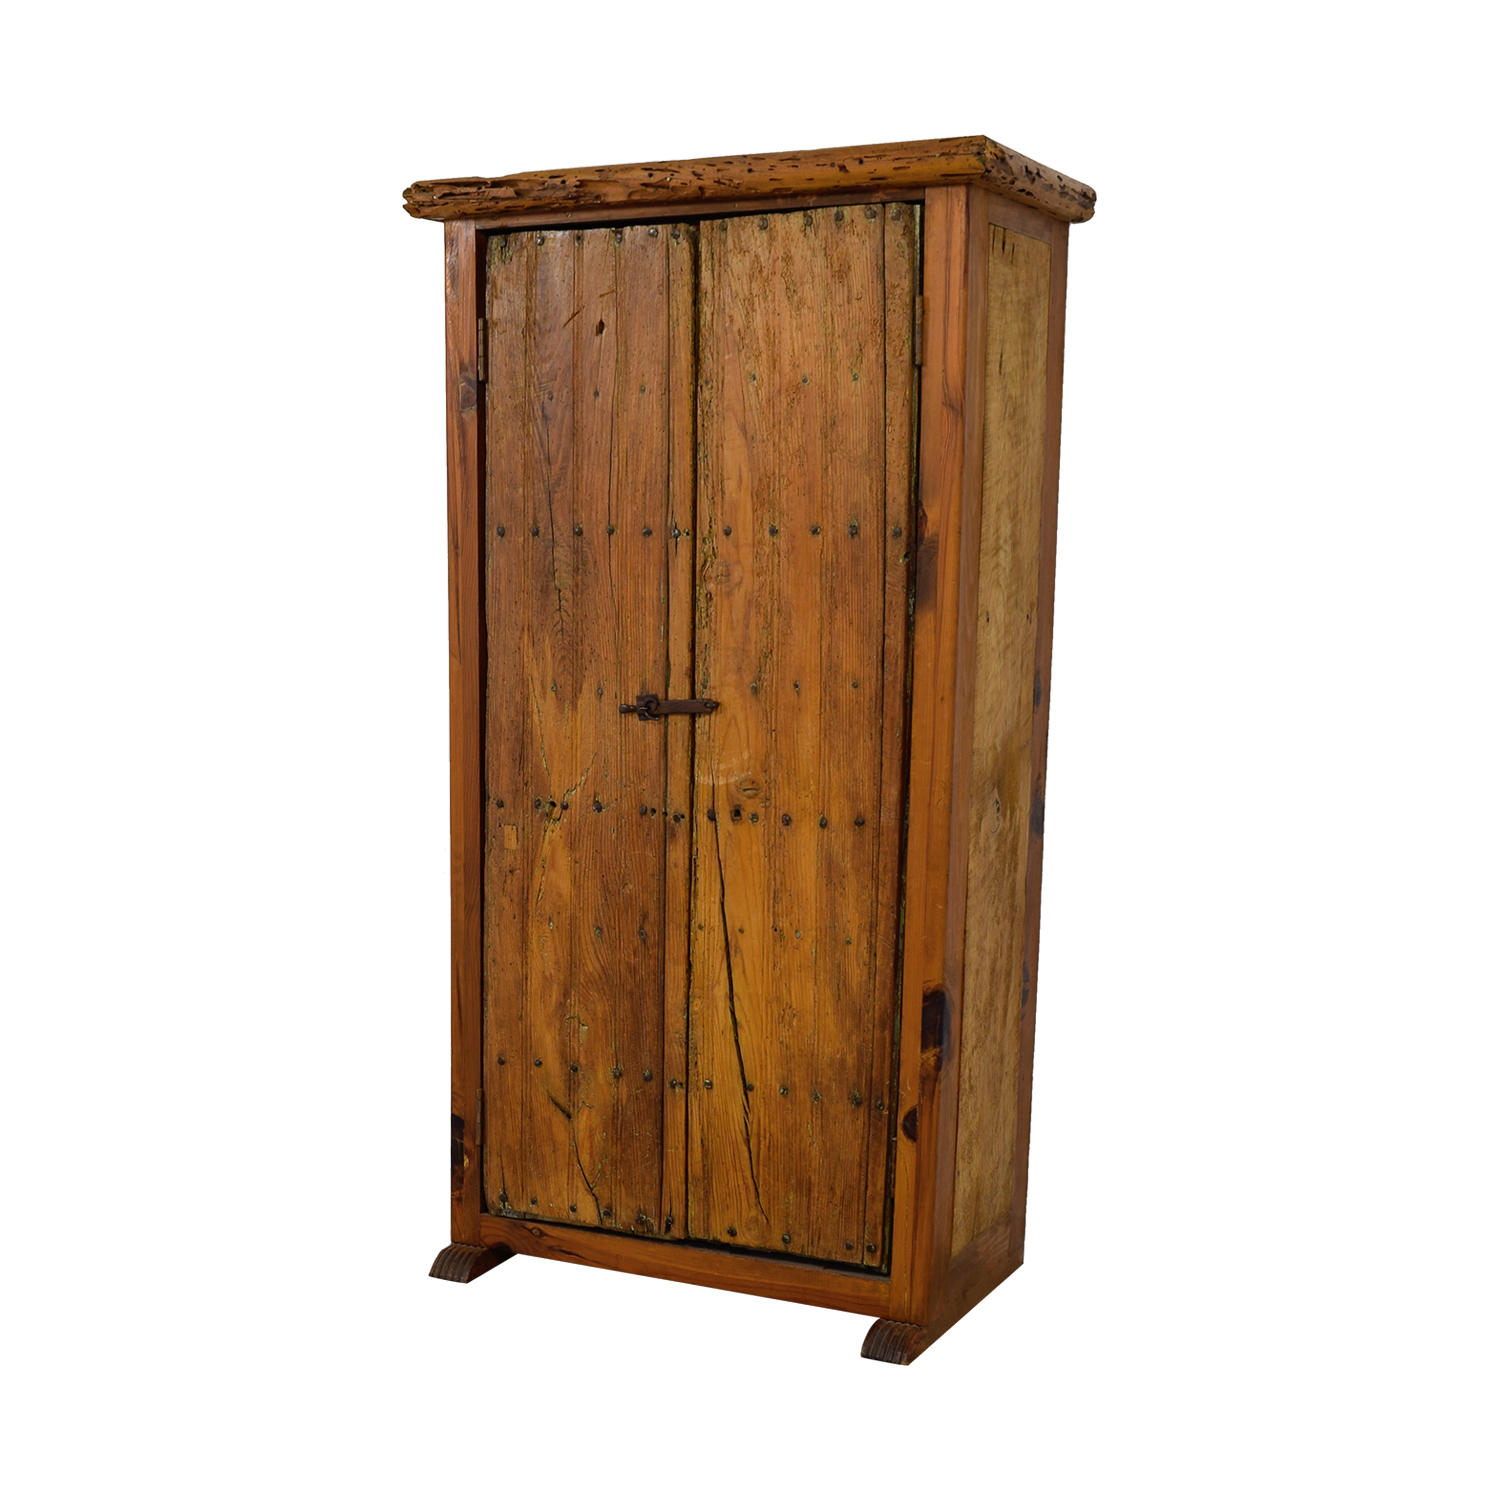 ABC Home & Carpet ABC Home & Carpet Authentic Mexican Rustic Barn Wood Armoire